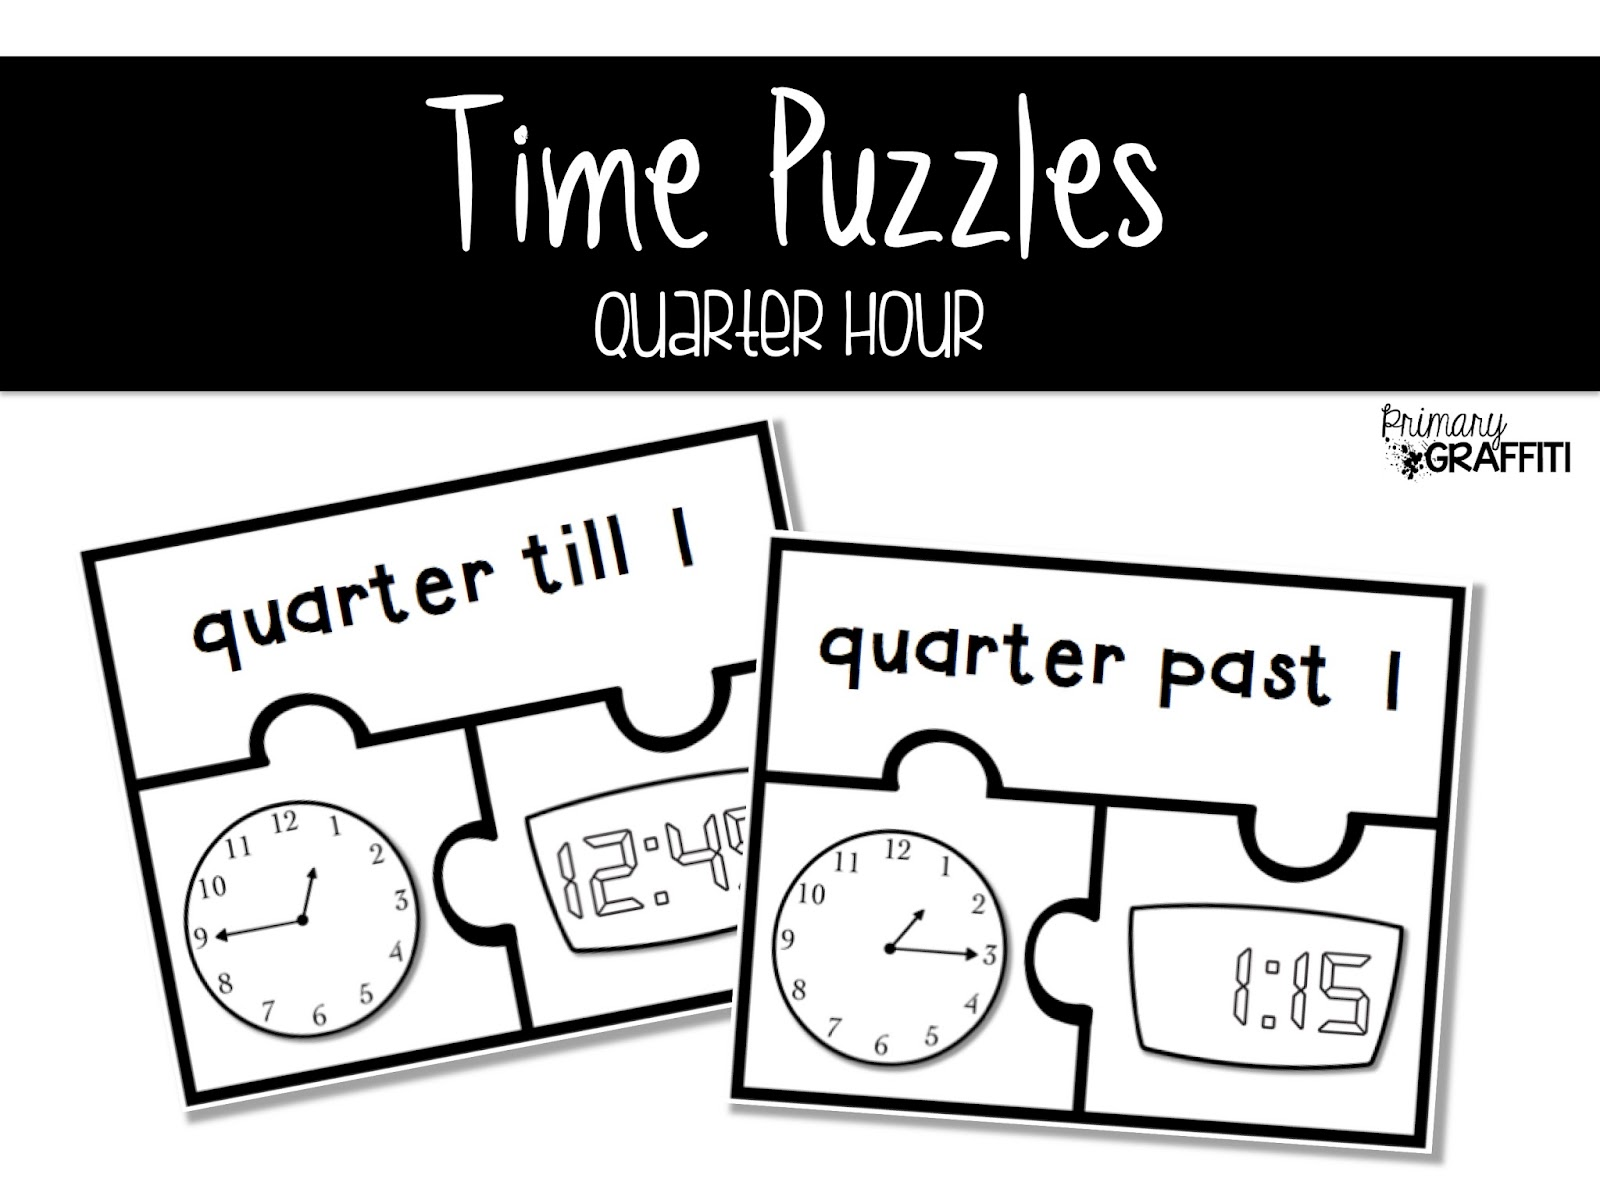 Hour and minute template 28 images free identify hour minute hour and minute template by primary graffiti the clock struck one a time telling pronofoot35fo Image collections